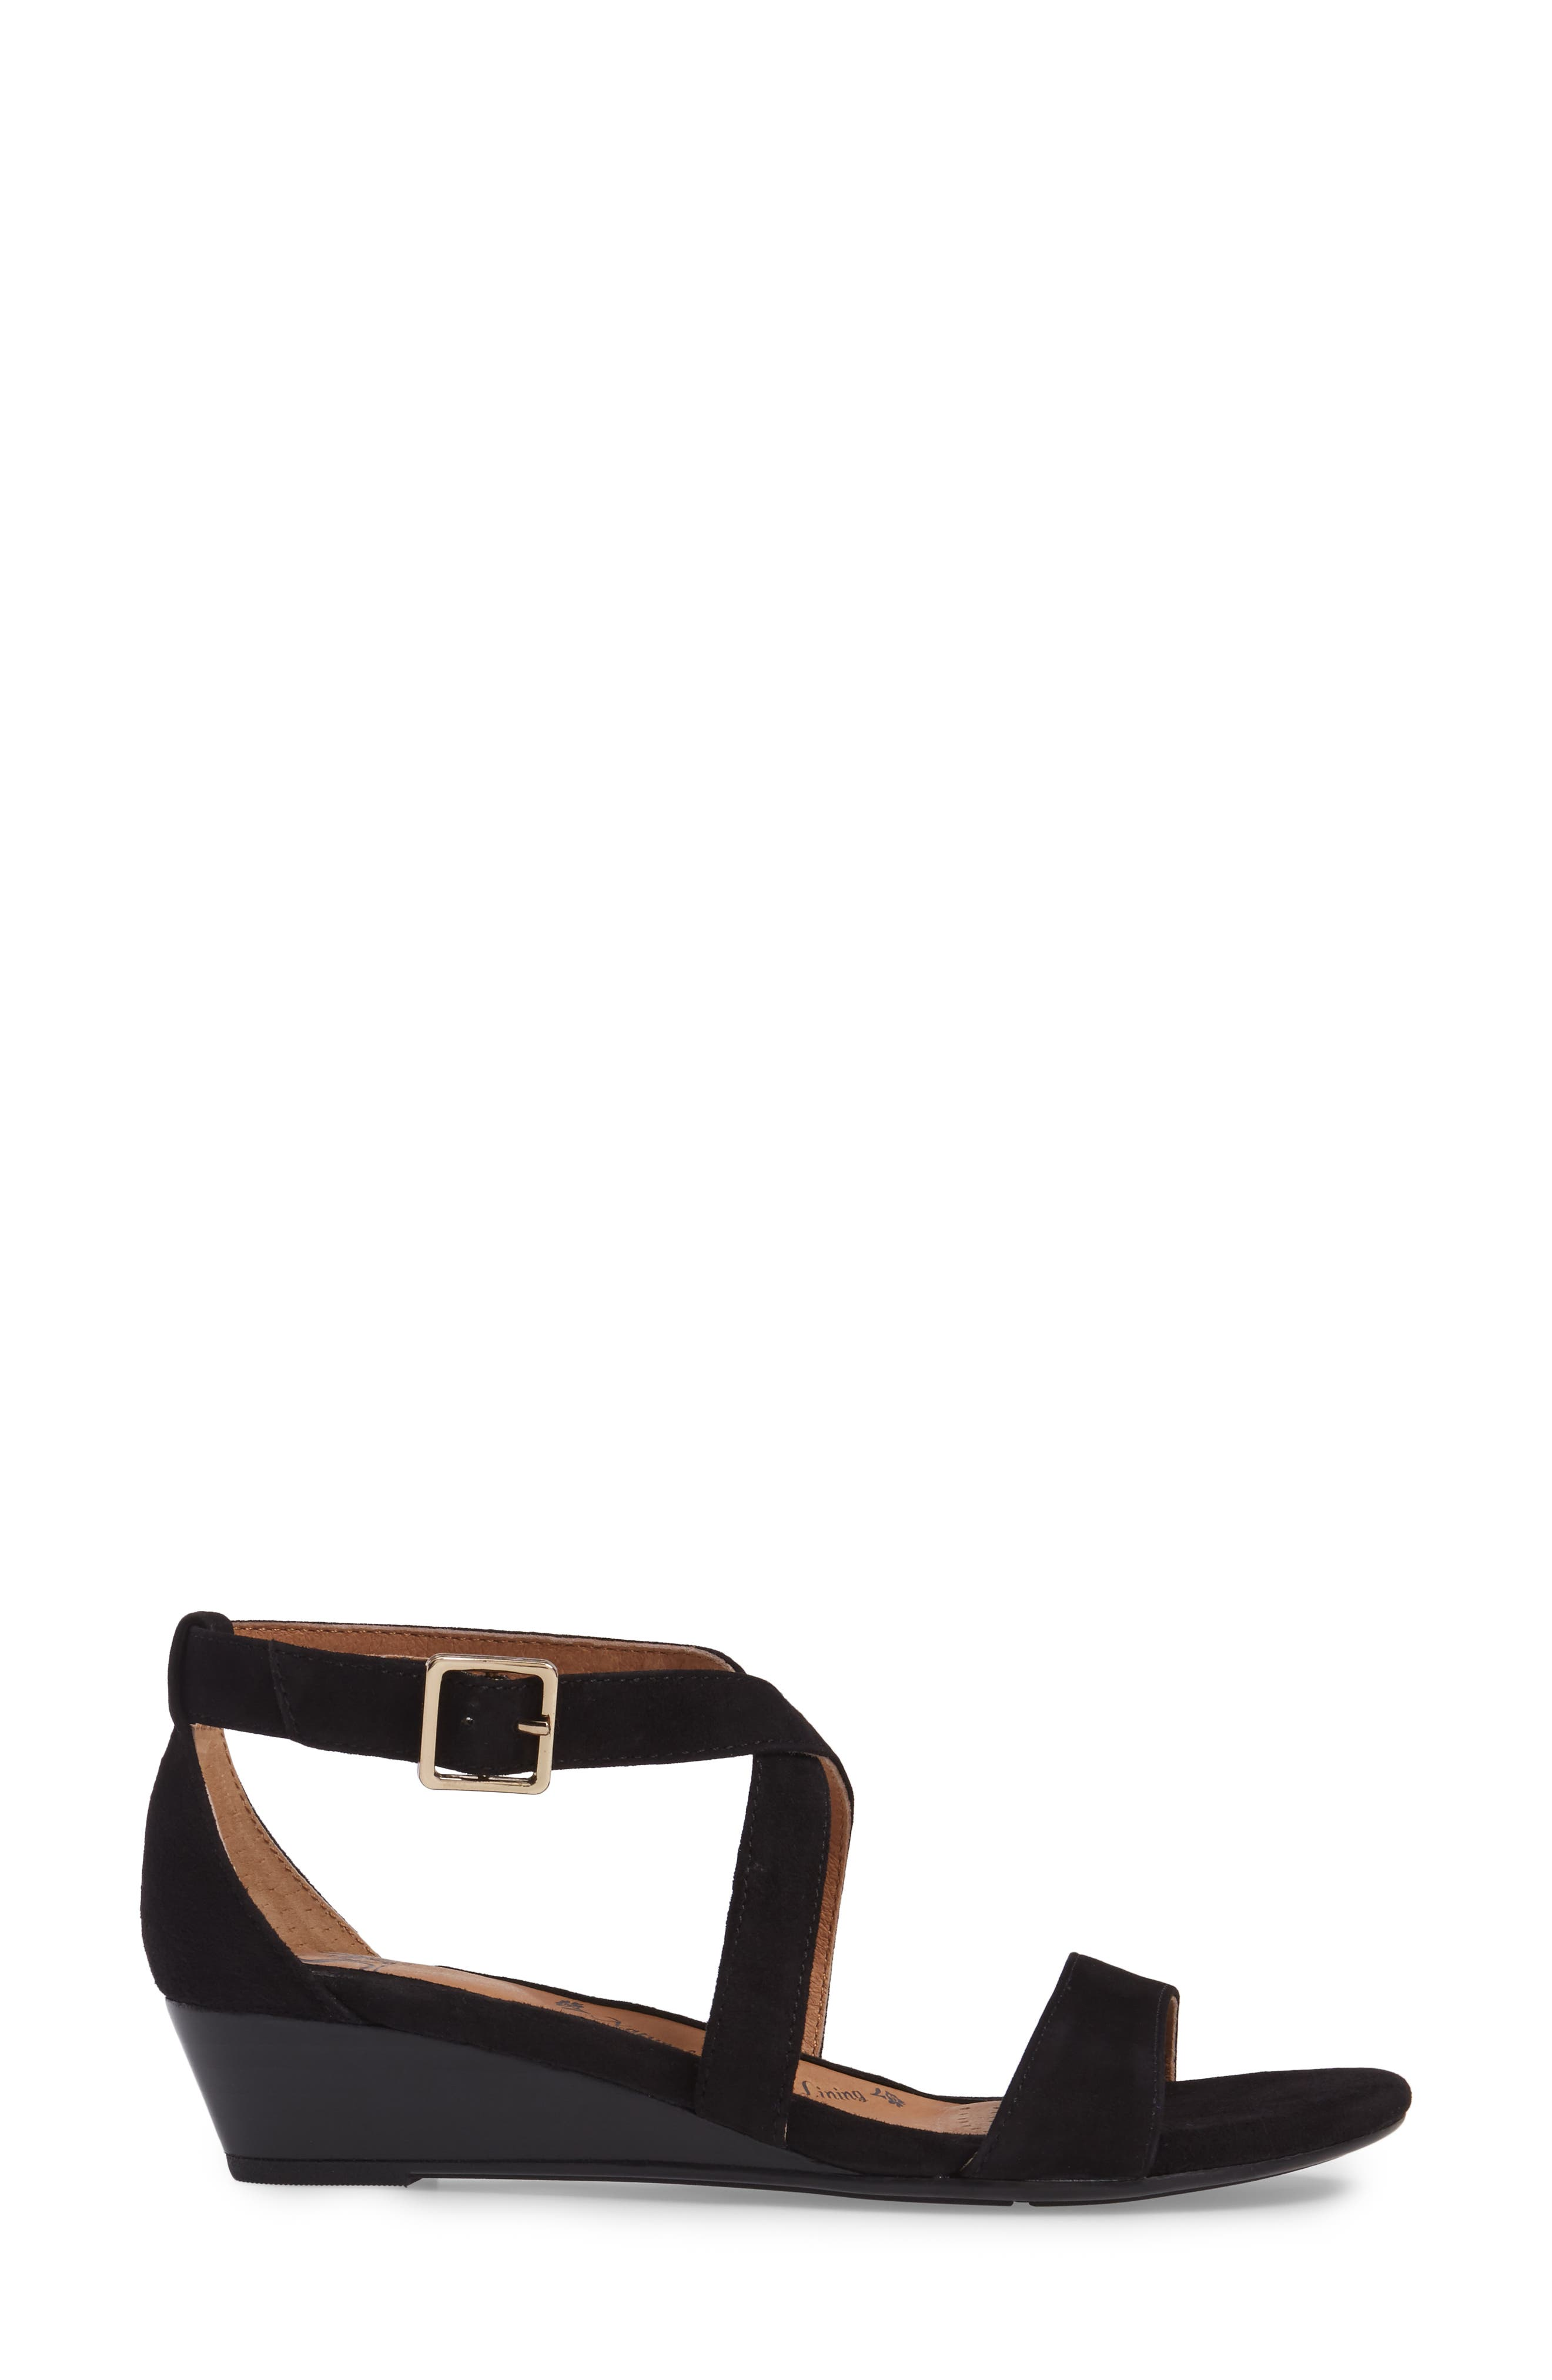 'Innis' Low Wedge Sandal,                             Alternate thumbnail 25, color,